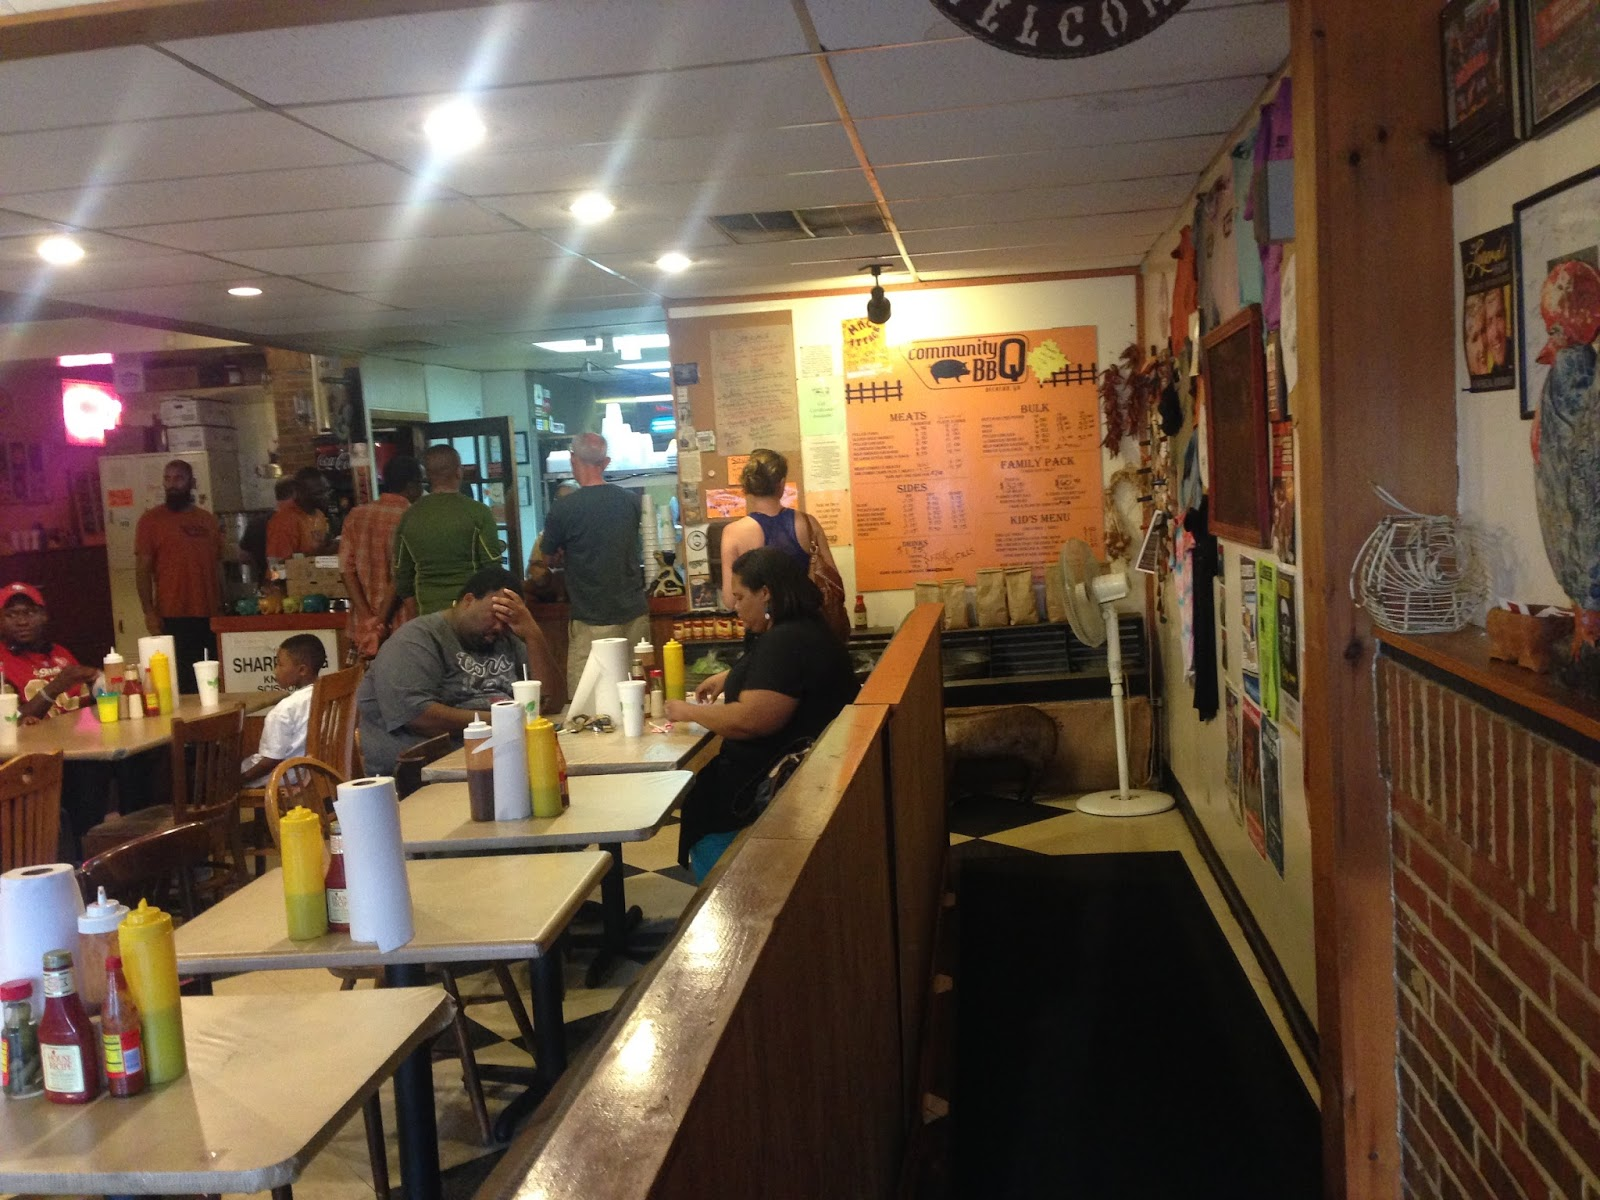 The menu is posted on the wall as you order at the counter - while these  days that's called